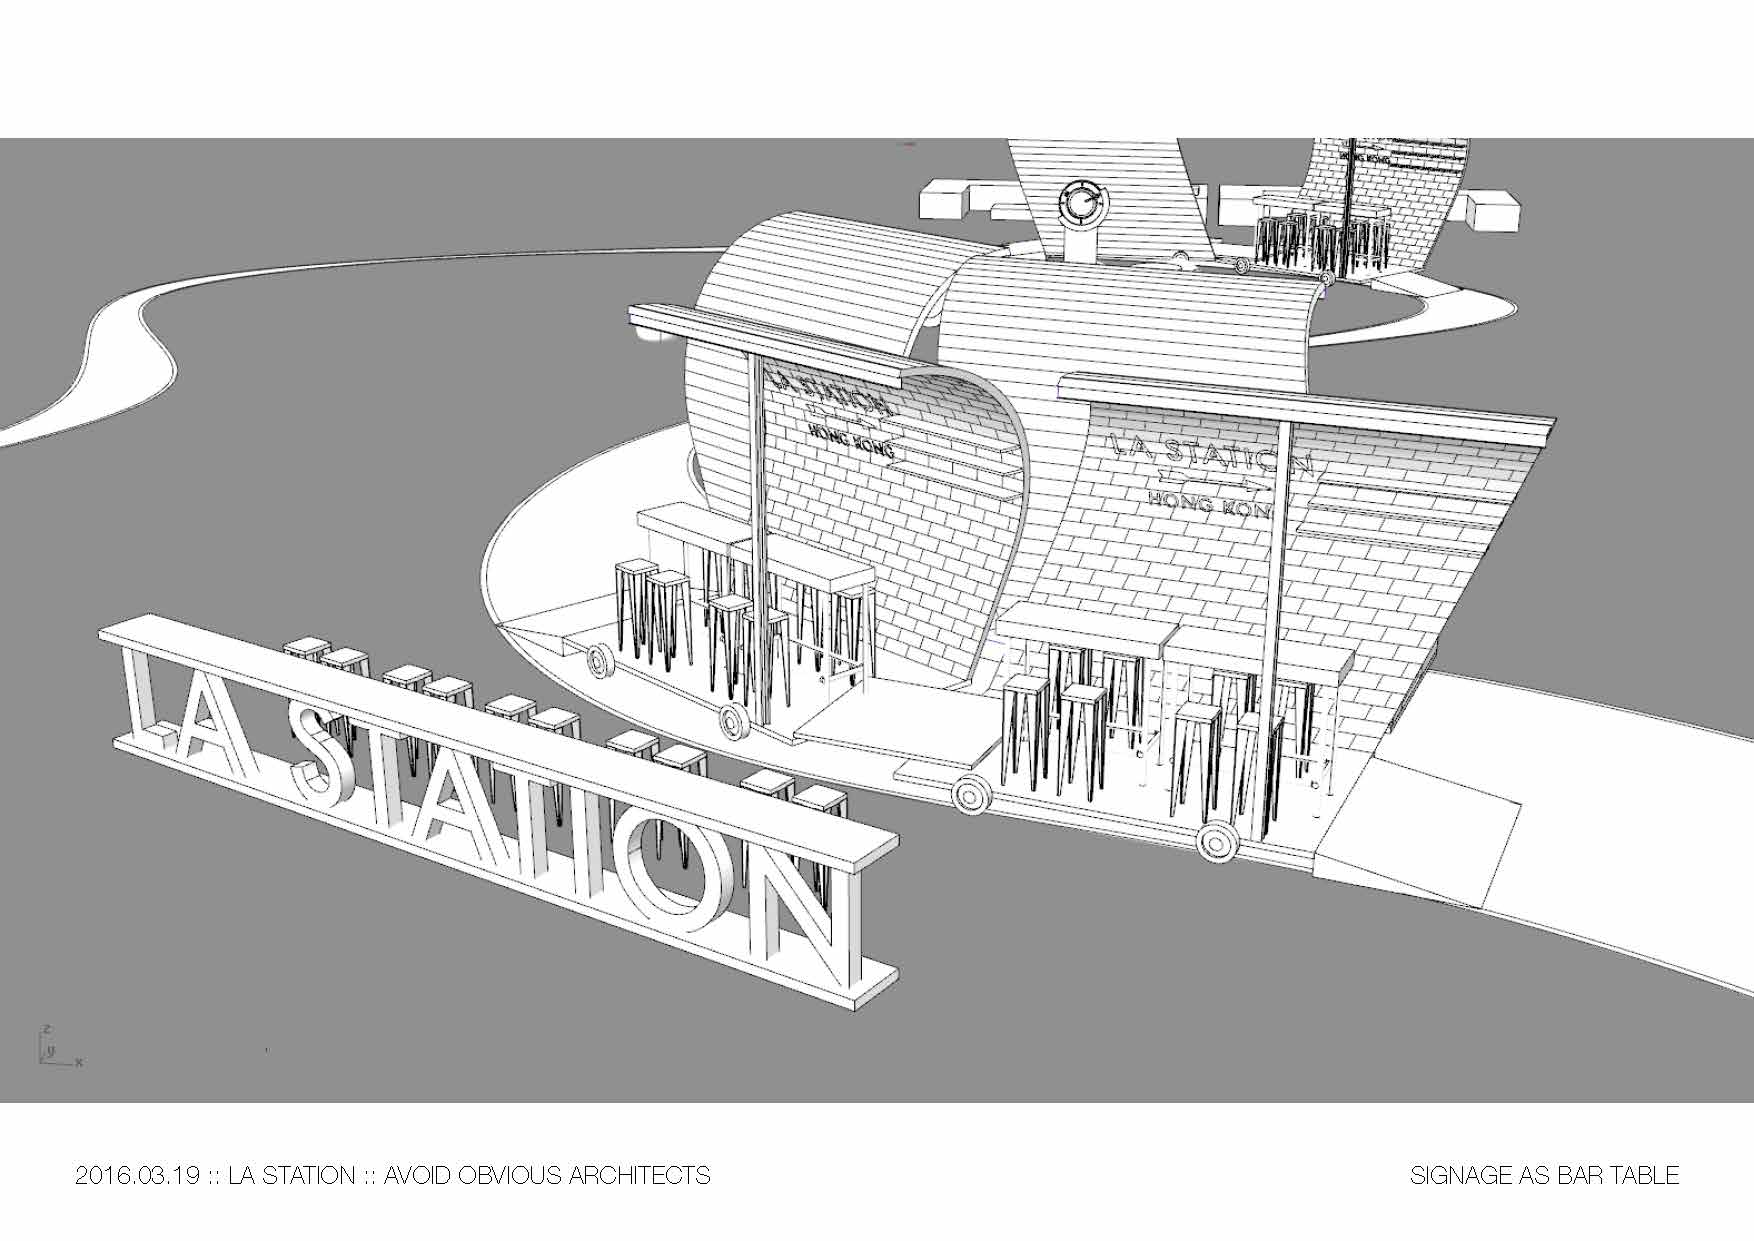 mobile, bar, cafe, avoid obvious, la station, coffee, module, architecture, train, kit of part, hilton, hotel, vicky chan, architects